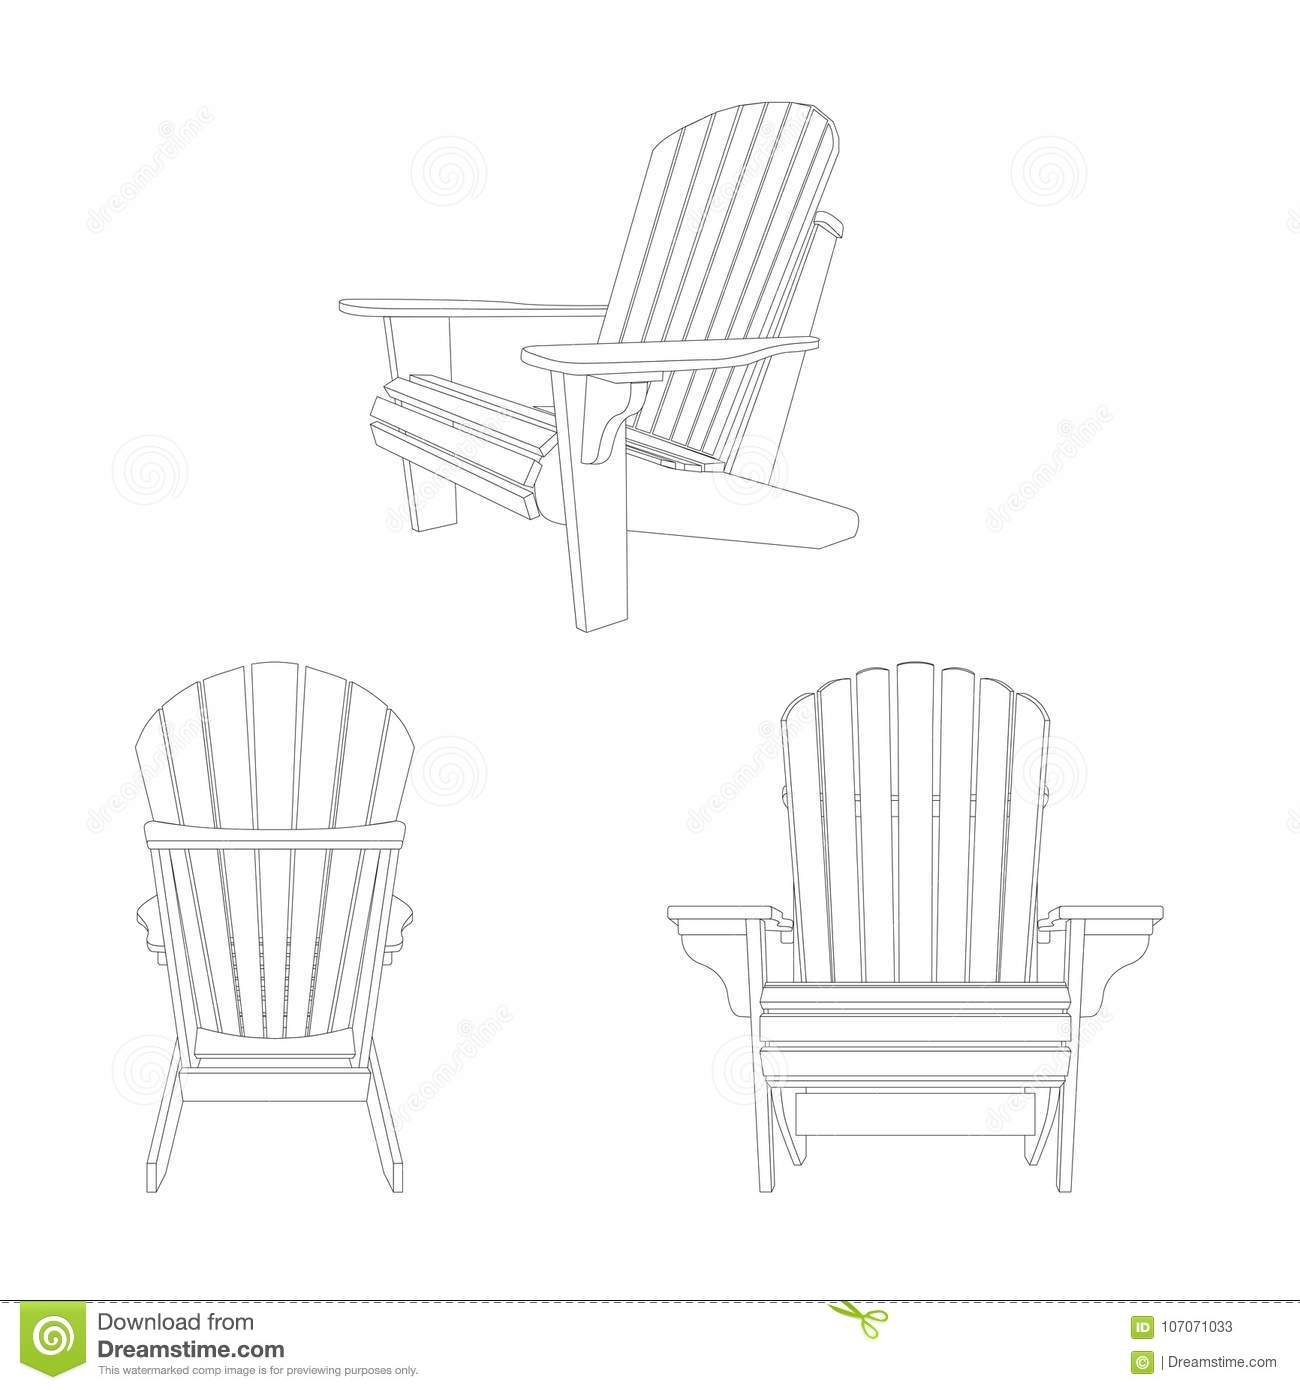 Fabulous Classic Wooden Outdoor Chair Outline Sketch Garden Beatyapartments Chair Design Images Beatyapartmentscom